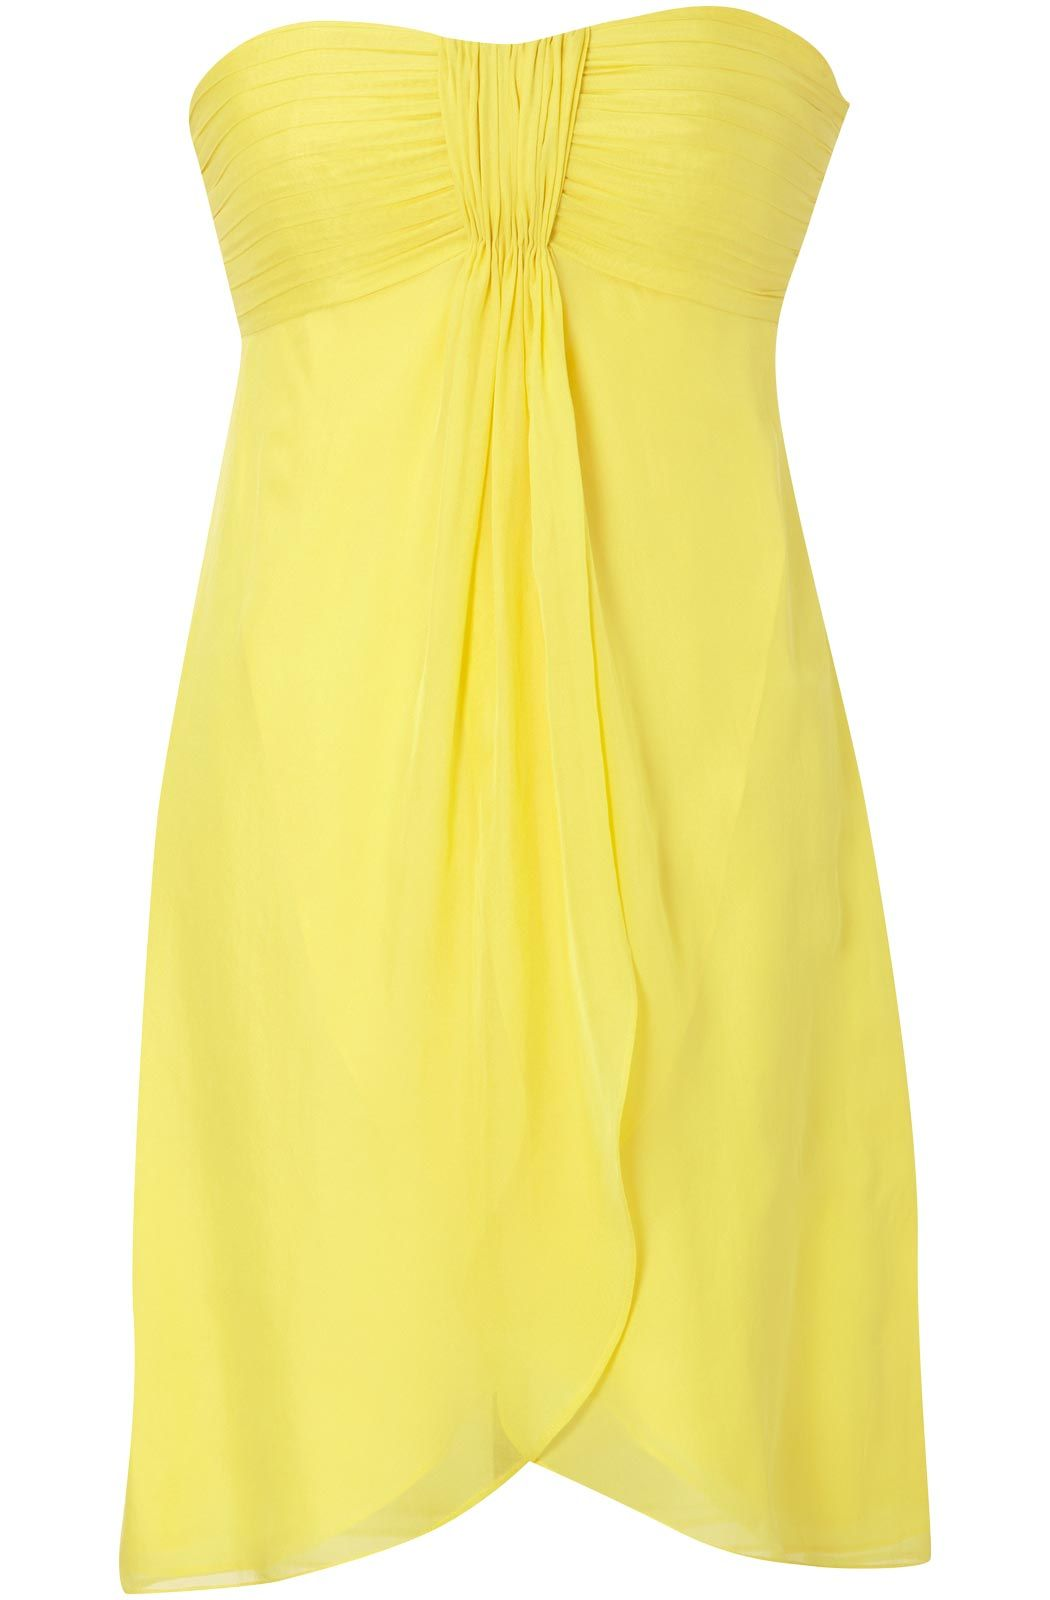 Yellow summer bridesmaid dresses quality of this dress would